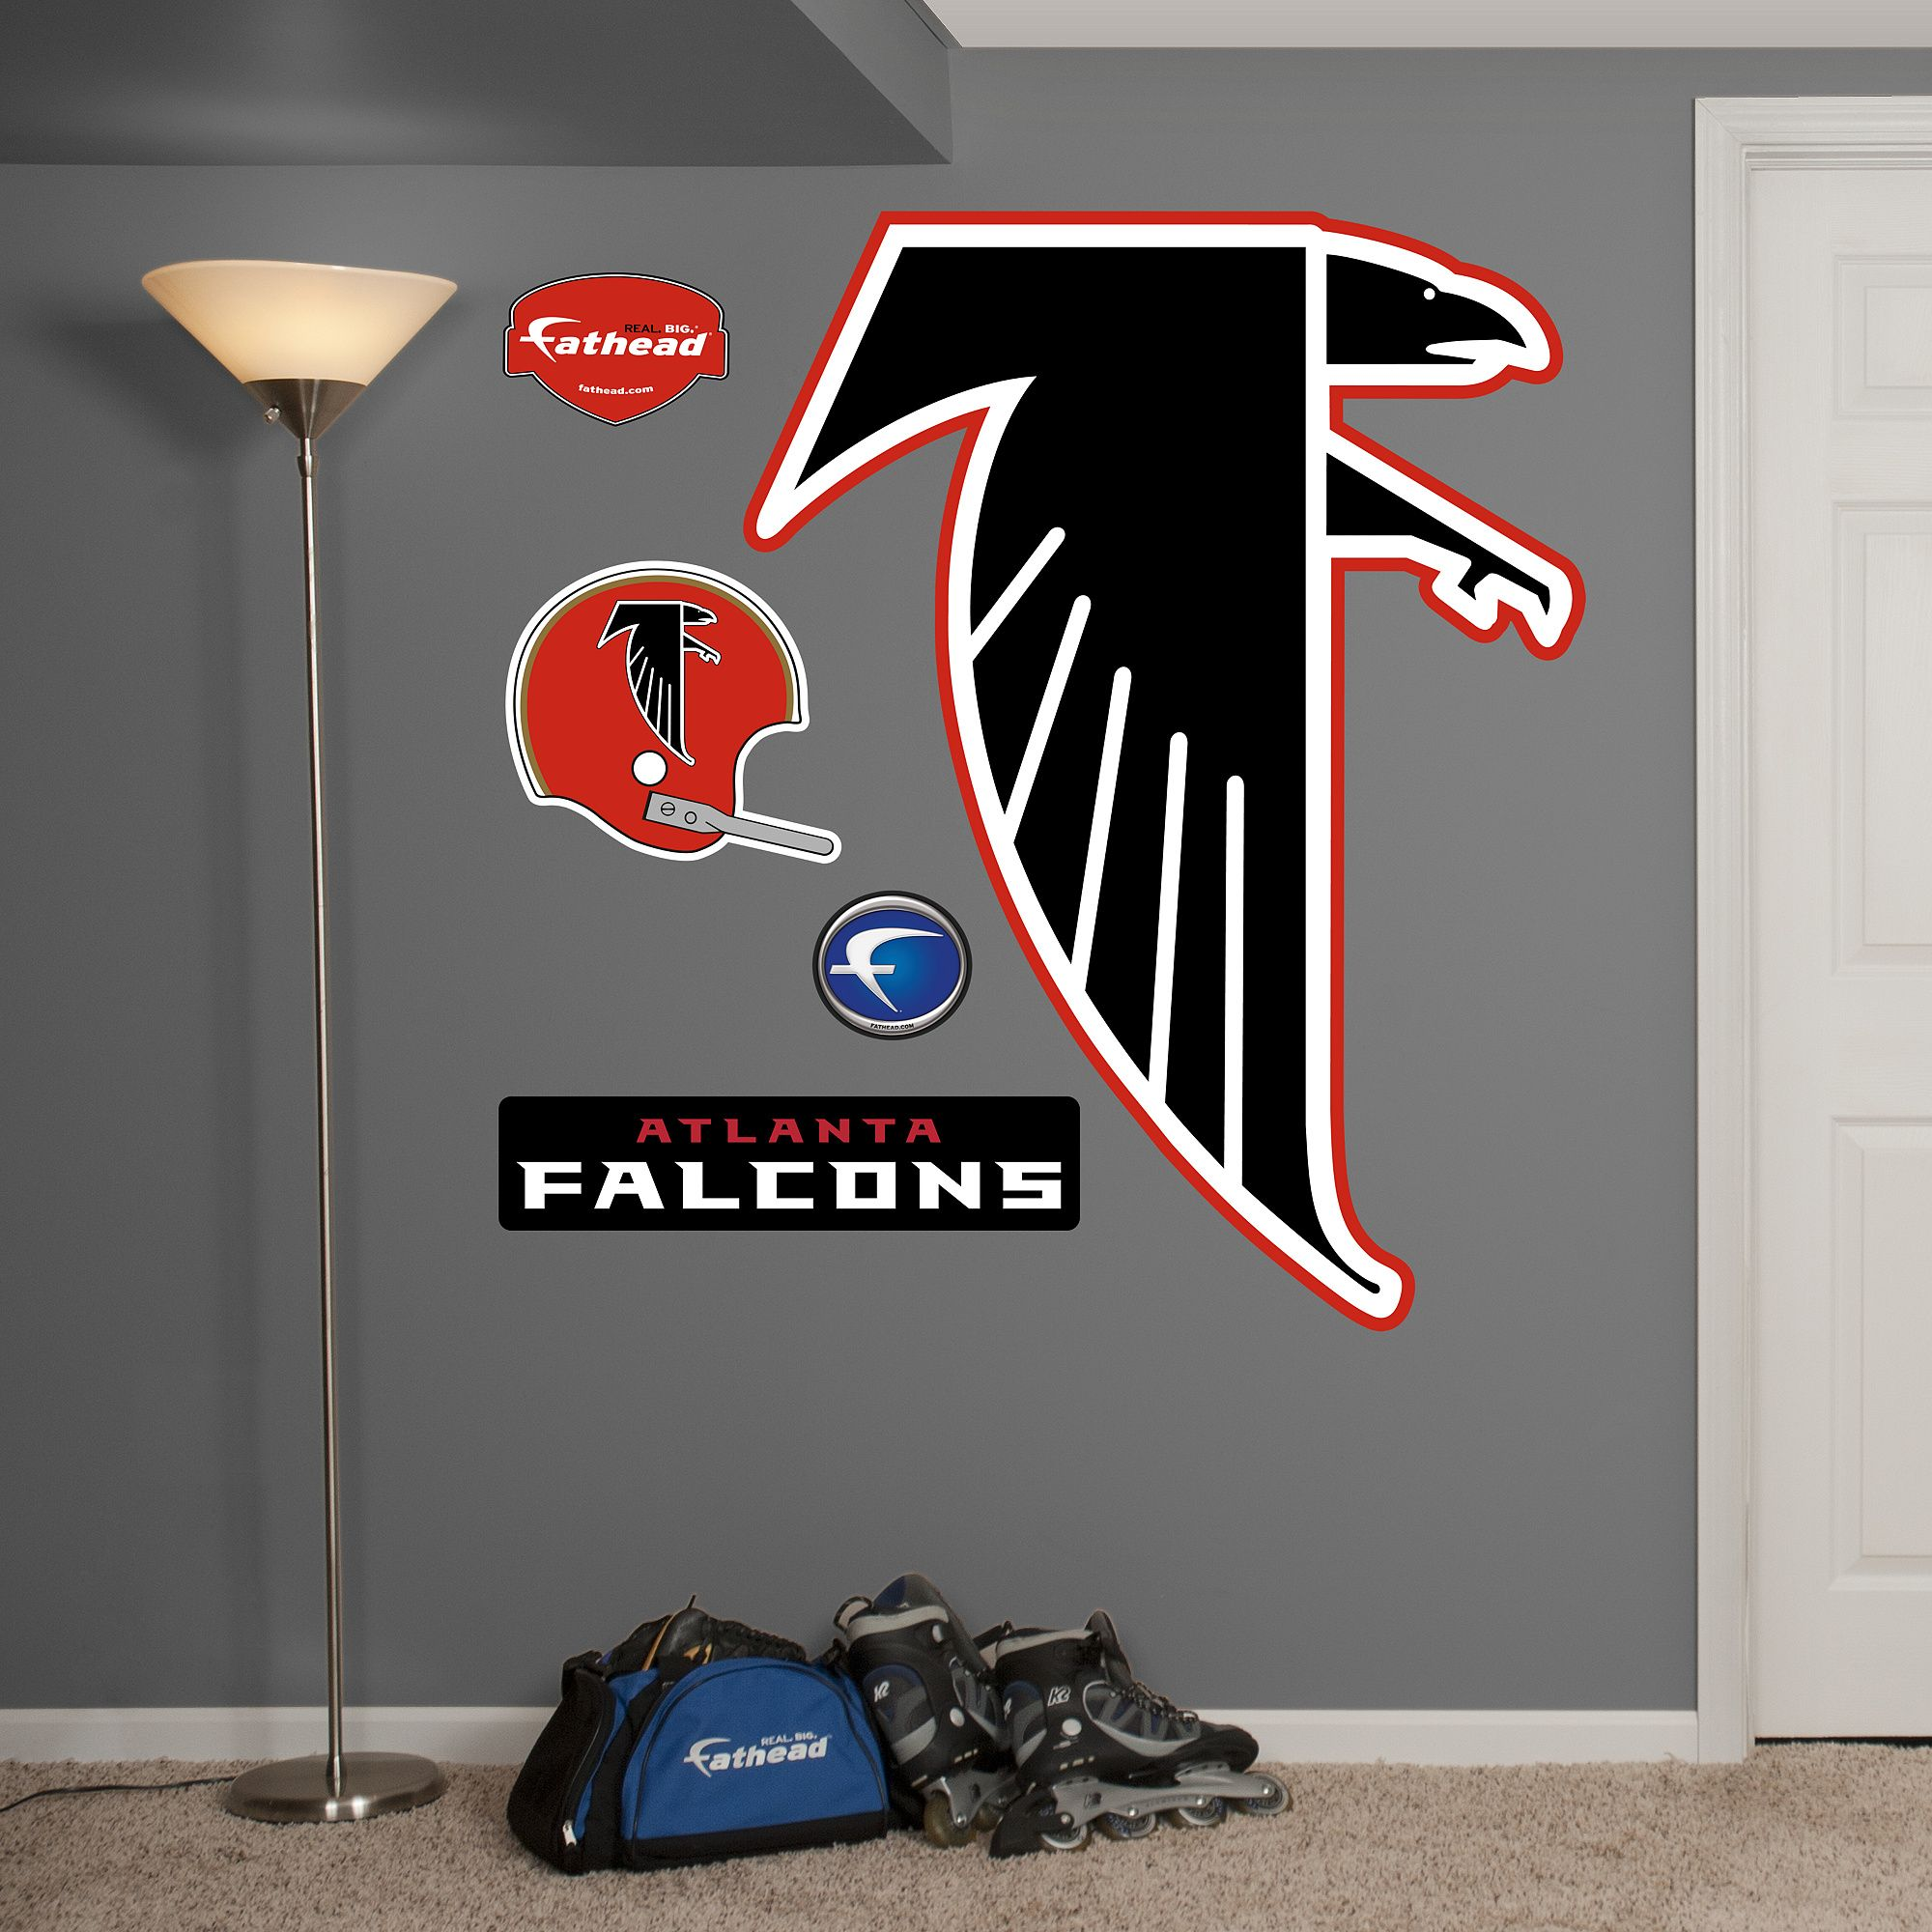 Atlanta Falcons Classic Logo Giant Officially Licensed Nfl Removable Wall Decal Classic Logo Atlanta Falcons Logo Wall